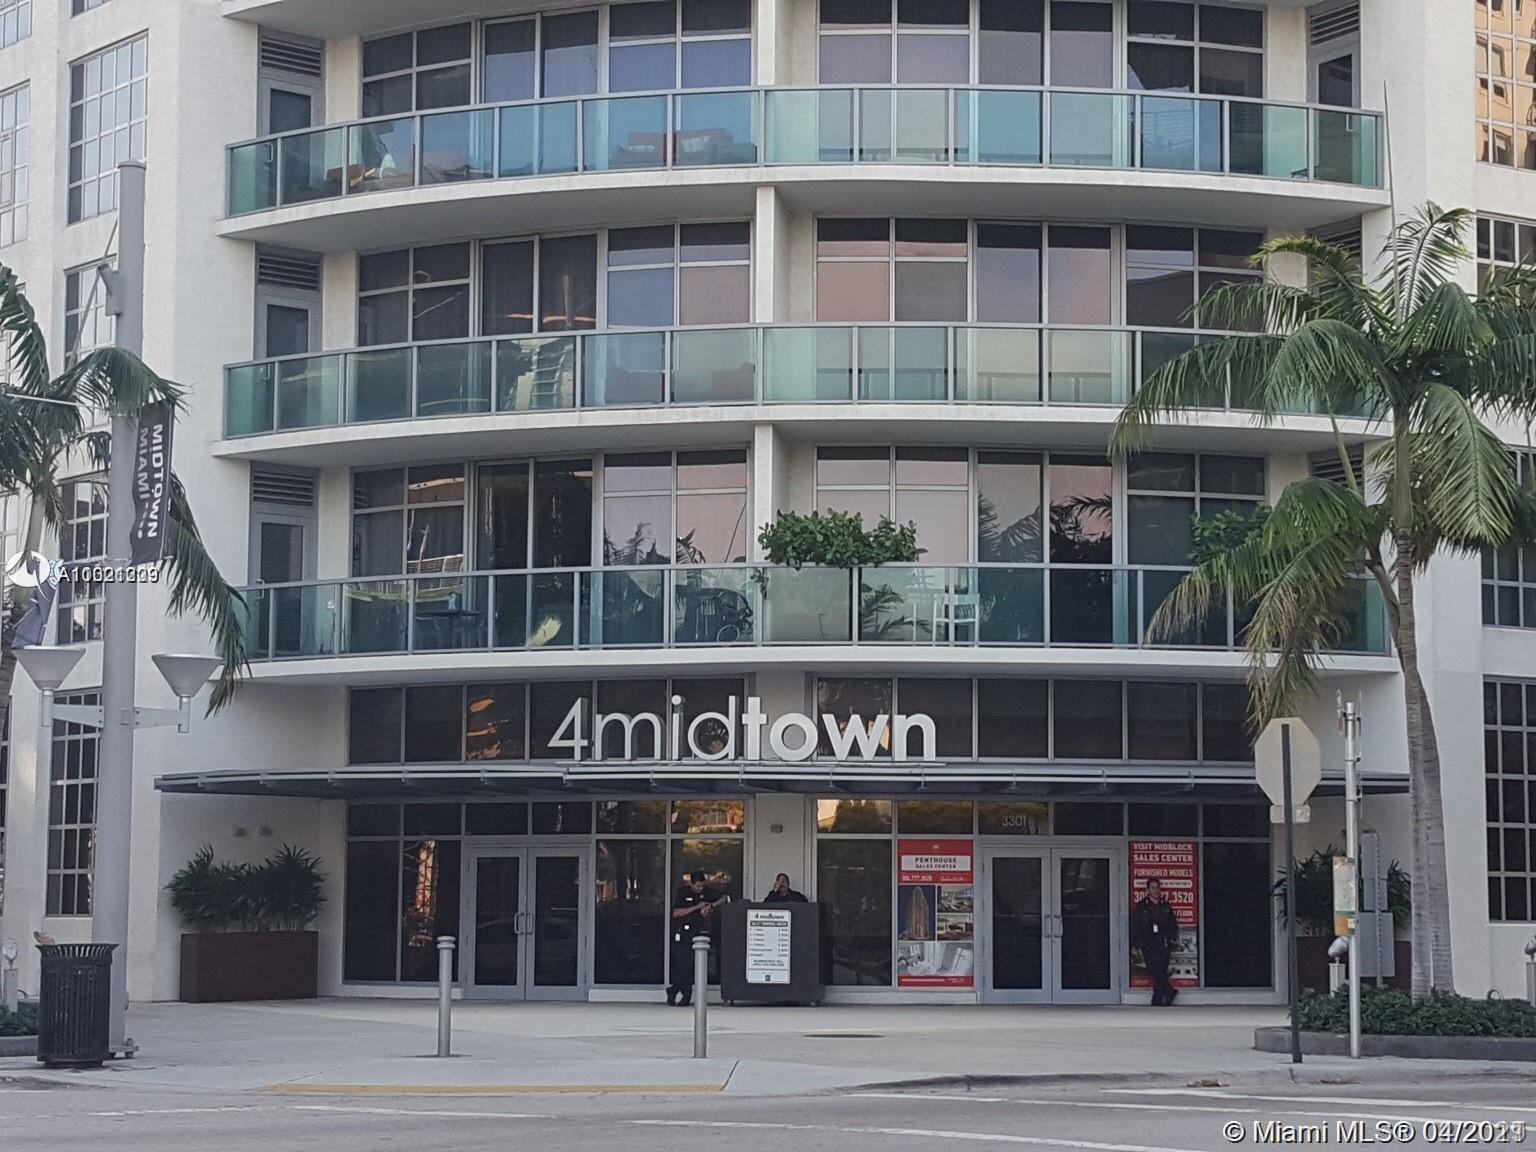 SITUATED BETWEEN WYNWOOD AND BISCAYNE BAY, THIS UNIT IS LOCATED IN FOUR MIDTOWN, BEAUTIFUL , SPACIOU